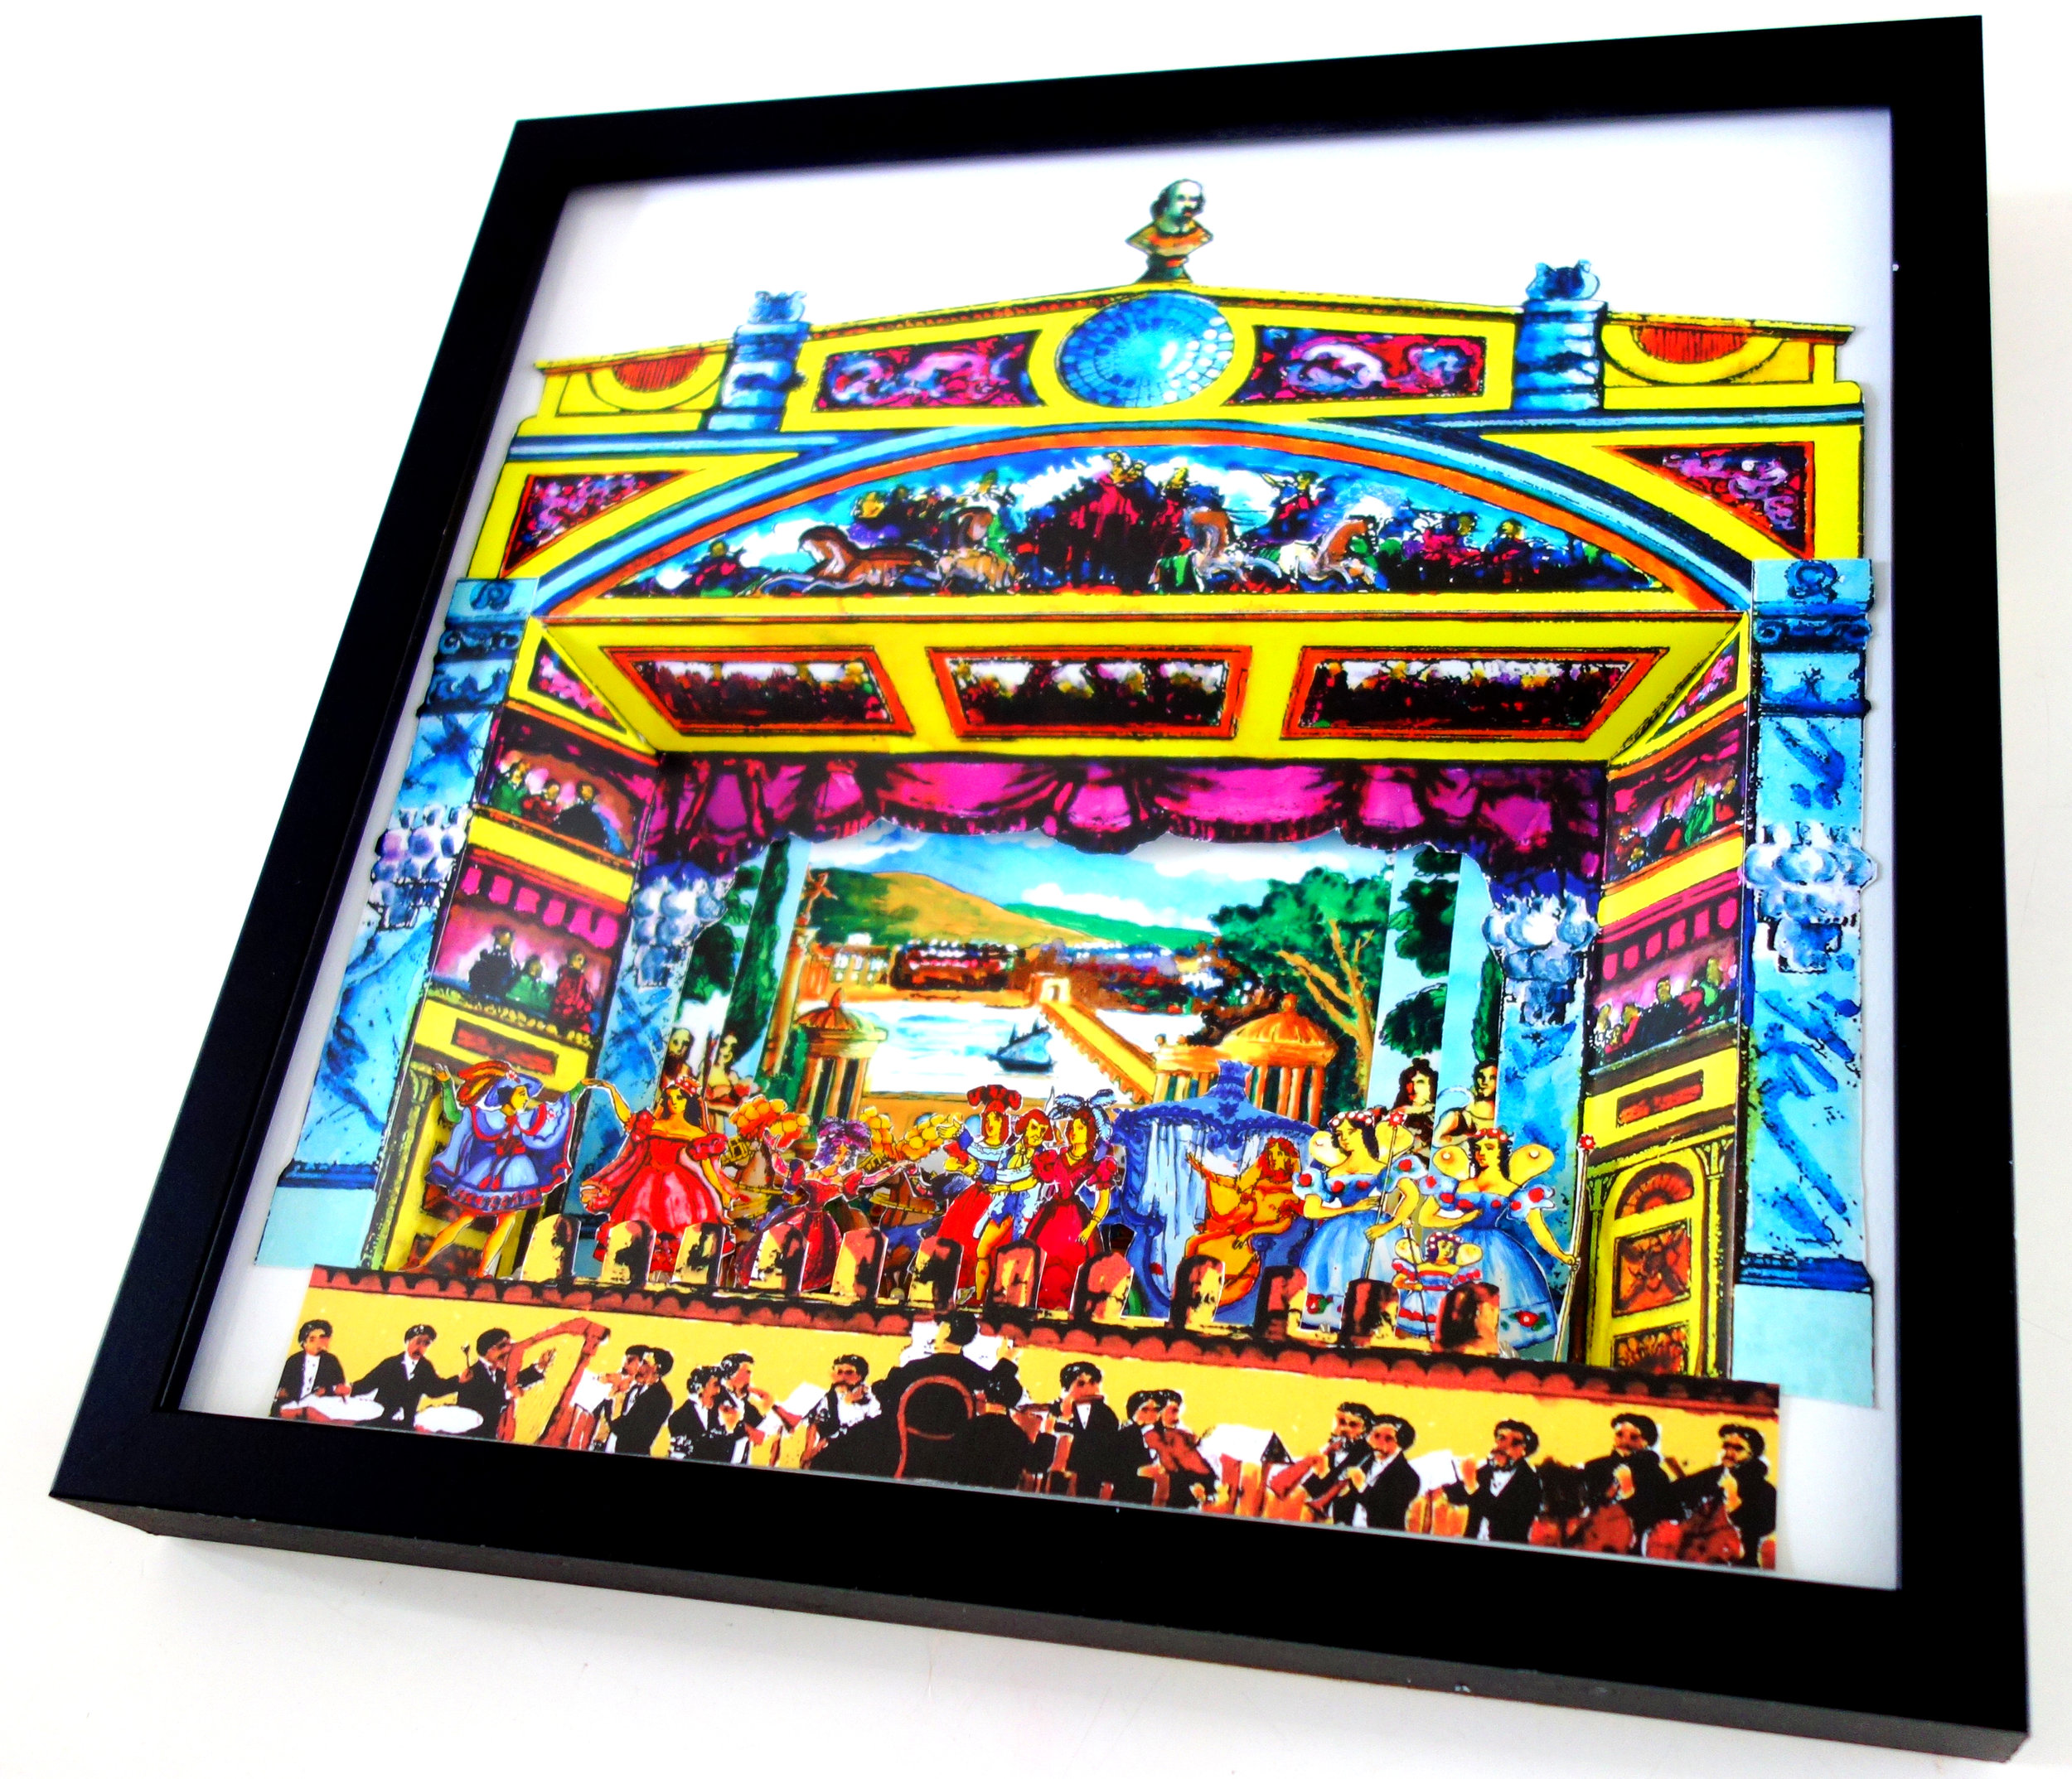 Framed Theatre Dioramas - This series is based on the Cinderella pantomime, made famous by Pollock's Toy Theatre.